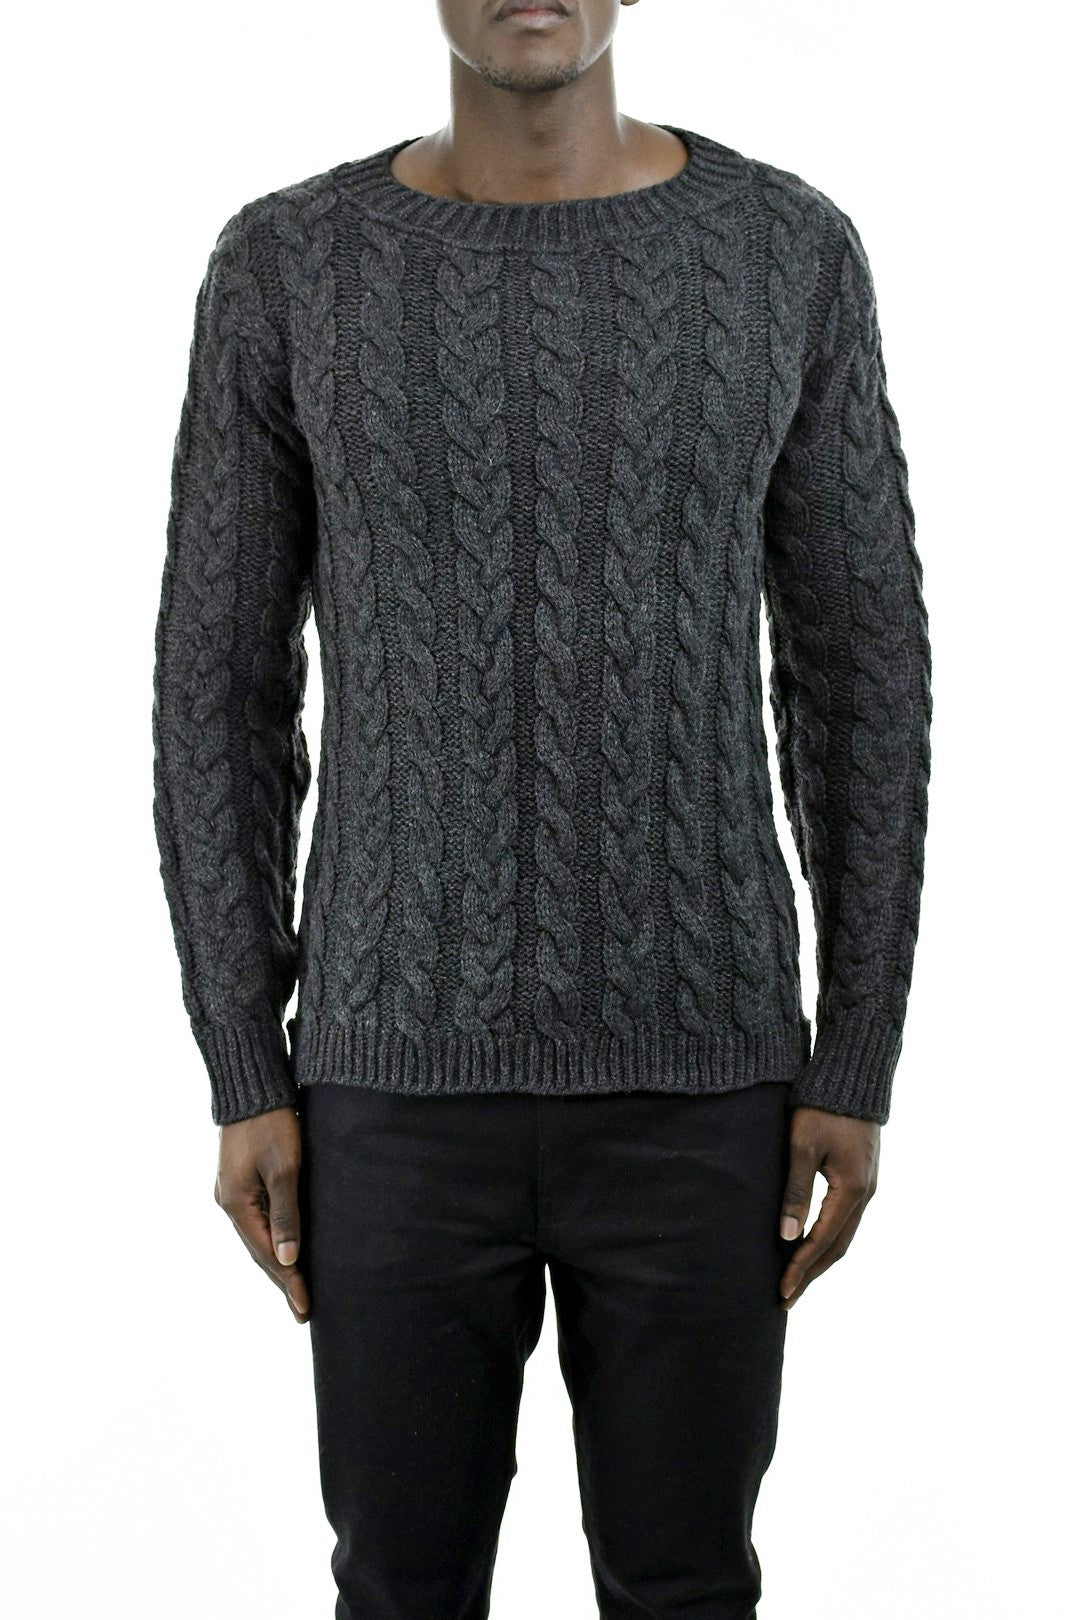 Charcoal Grey Cable Knit Jersey Knitwear ZG5185